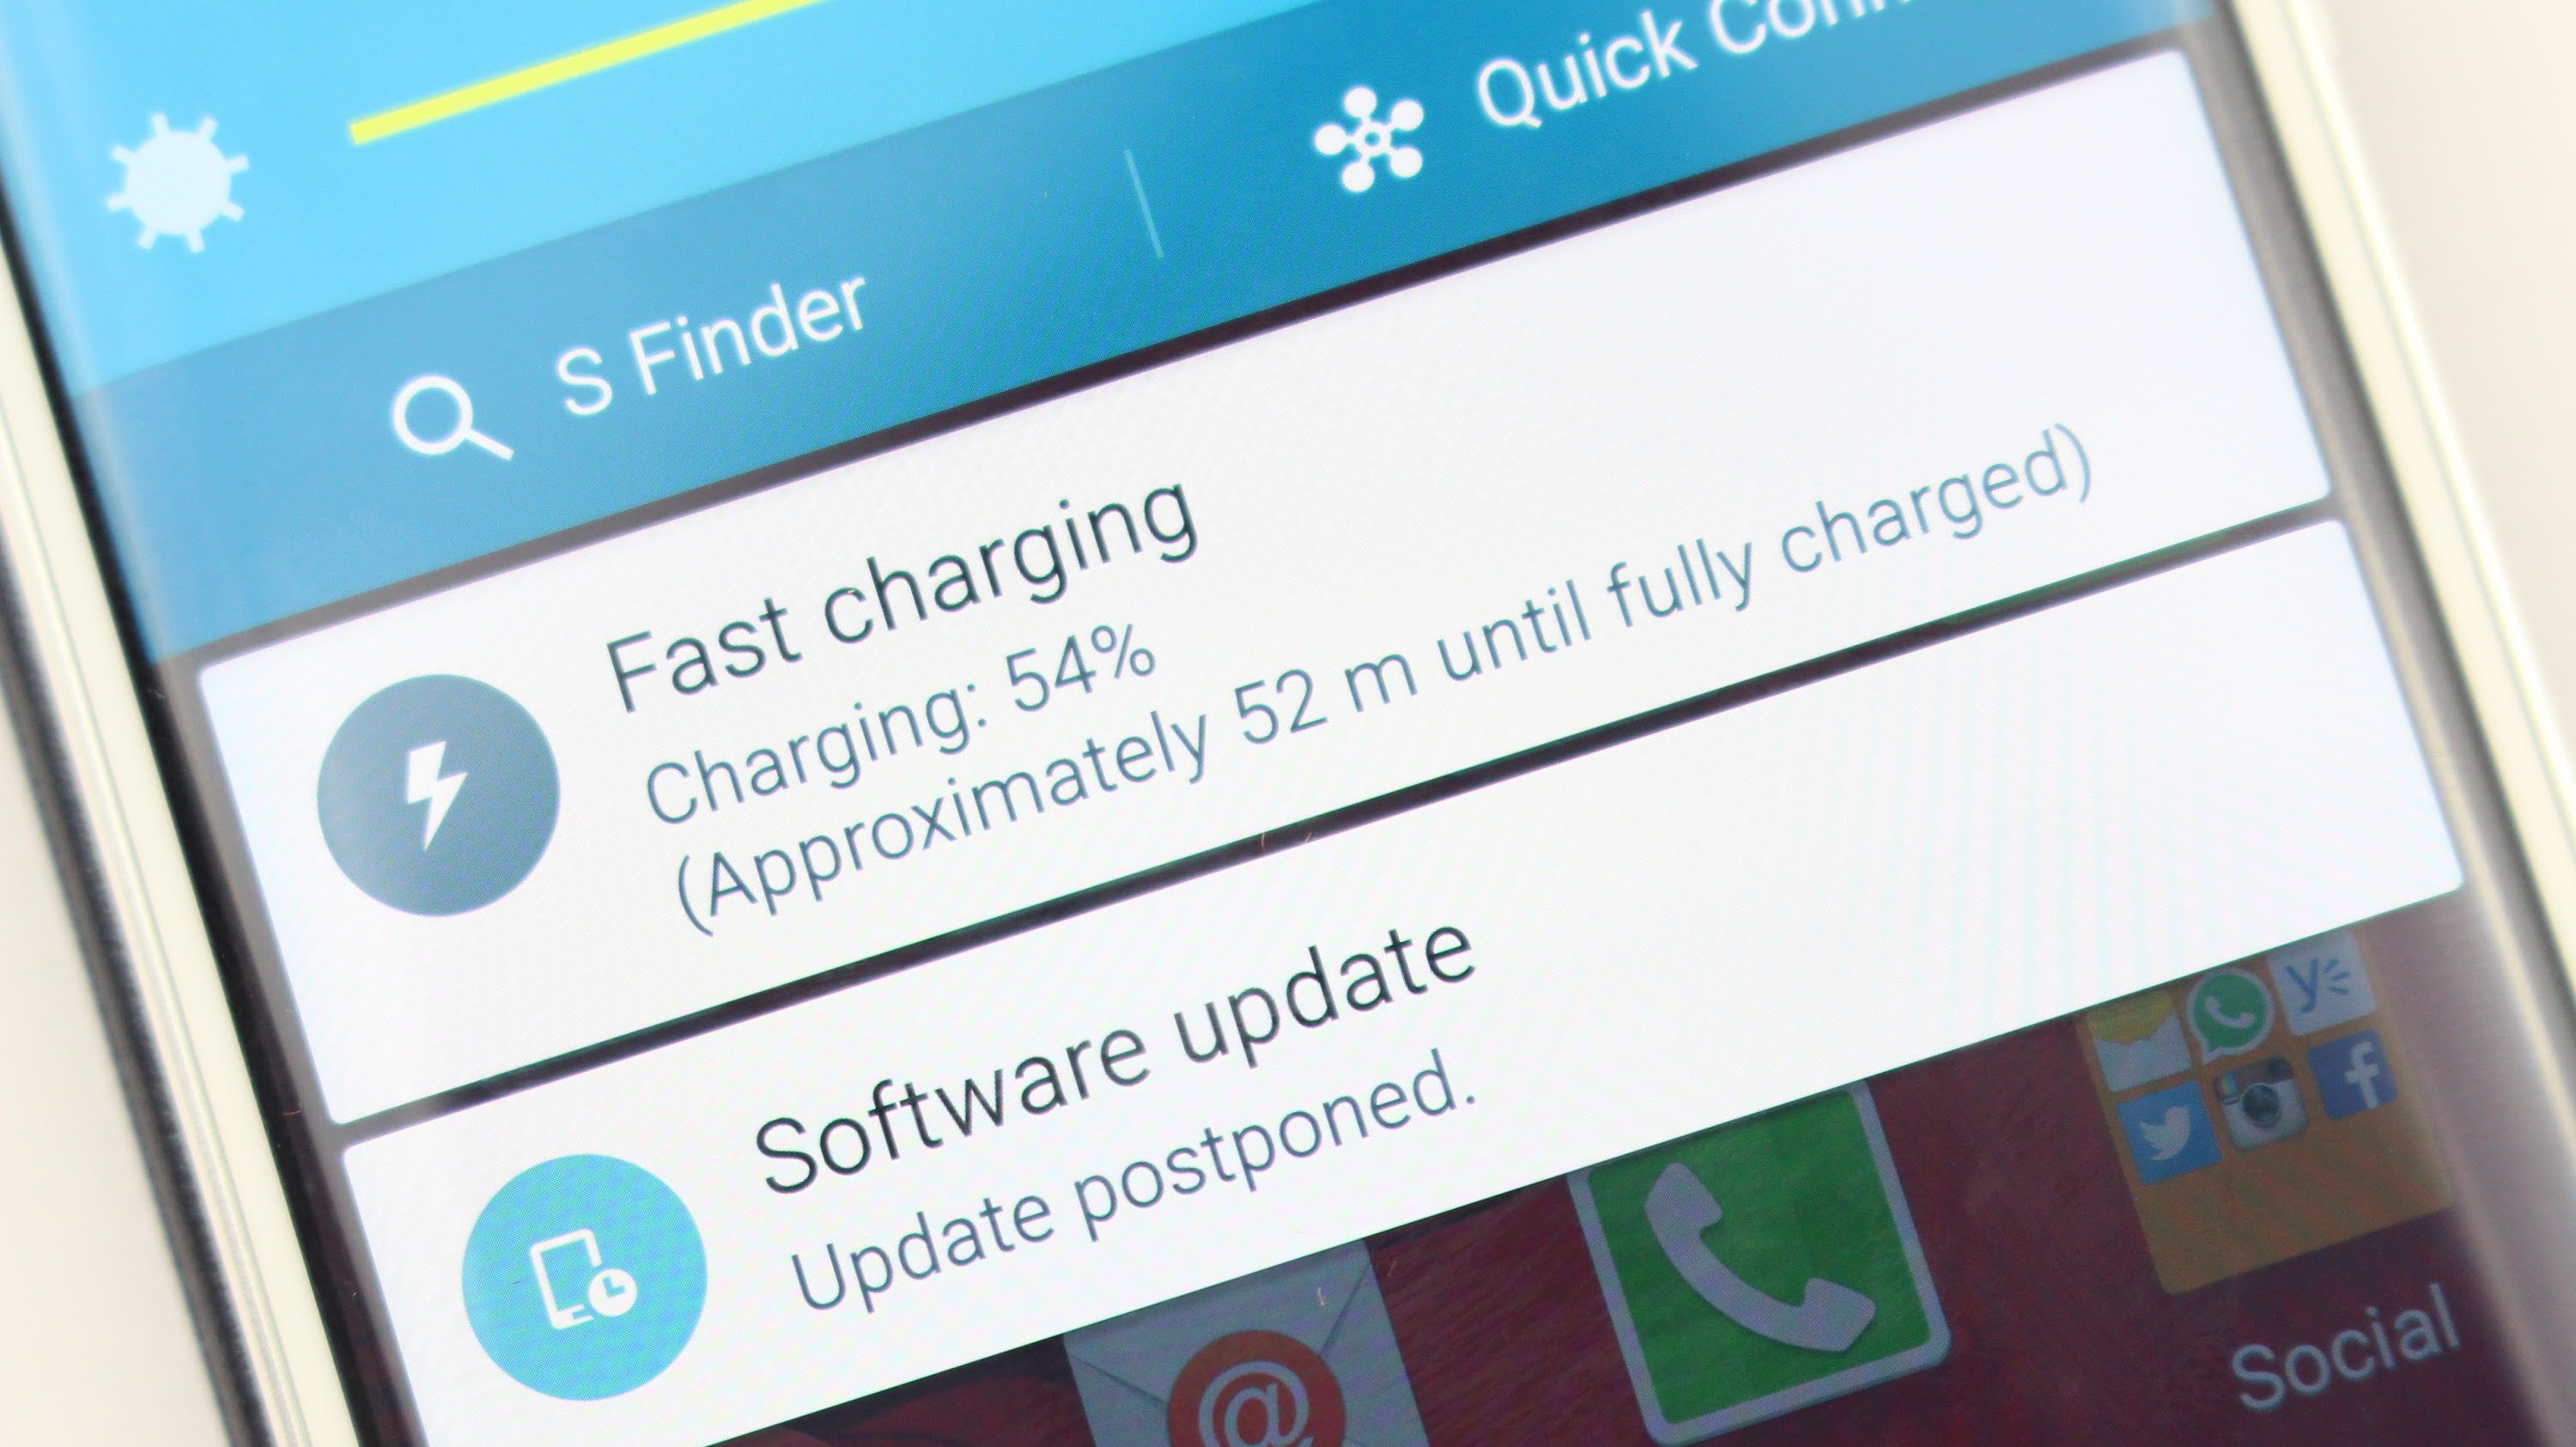 How To Fix Galaxy S7 Edge Fast Charging Not Working